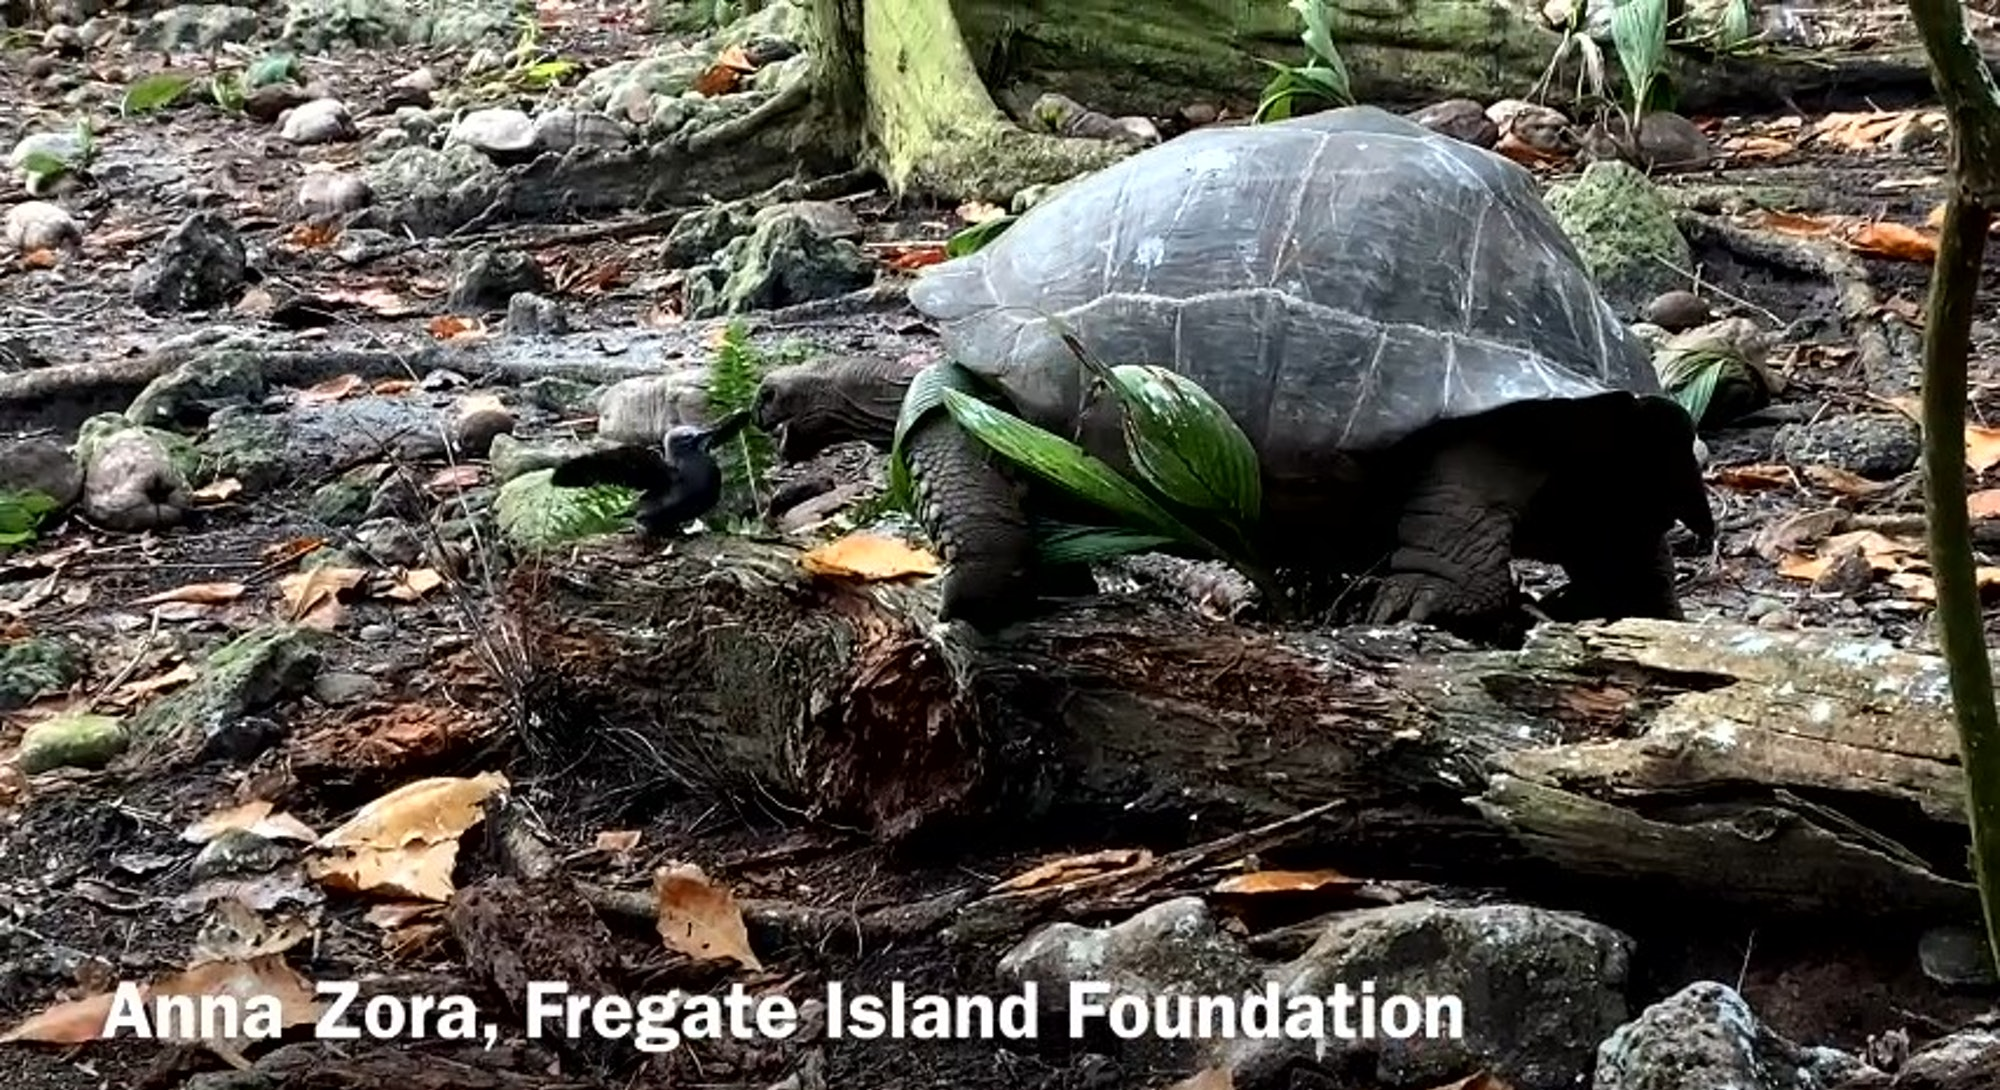 screenshot from video of tortoise hunting and eating tern chick